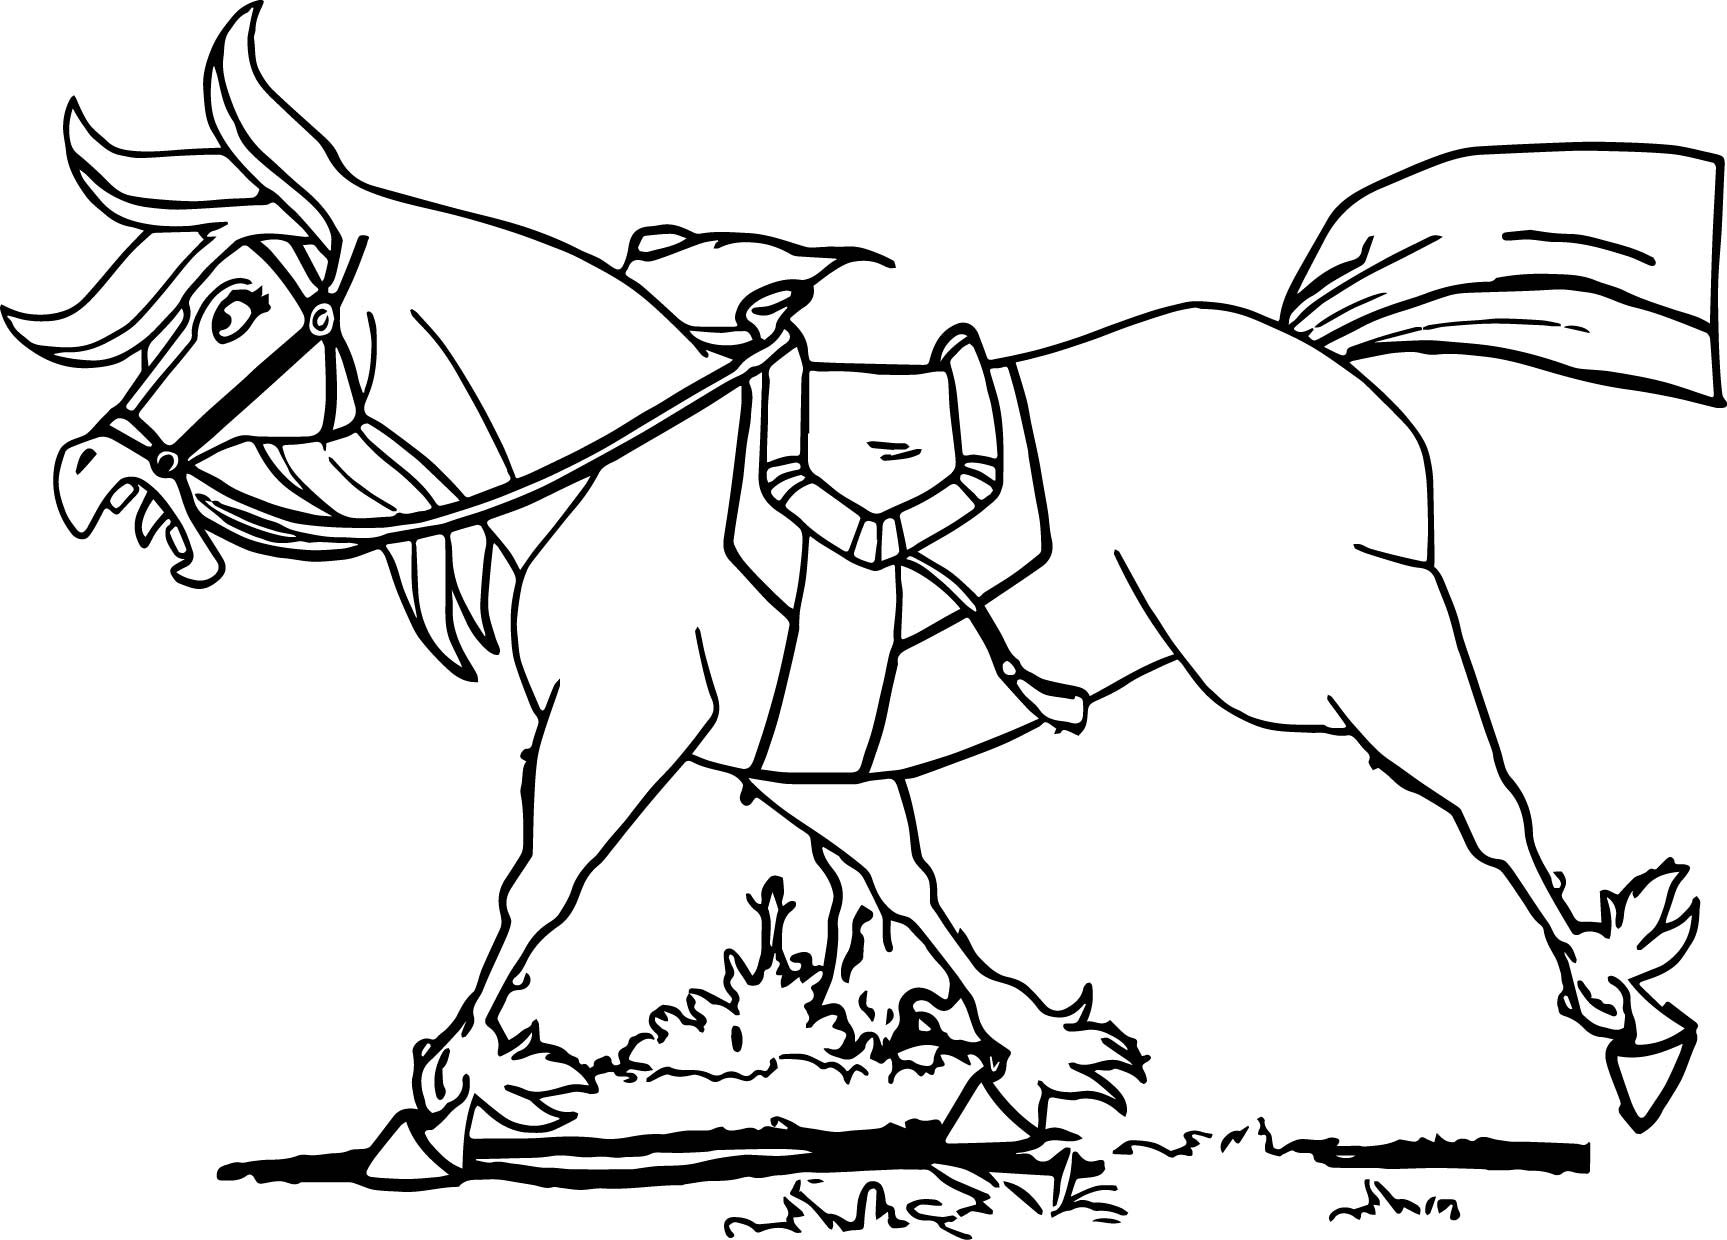 Trenk The Little Knight Horse Coloring Page Wecoloringpage